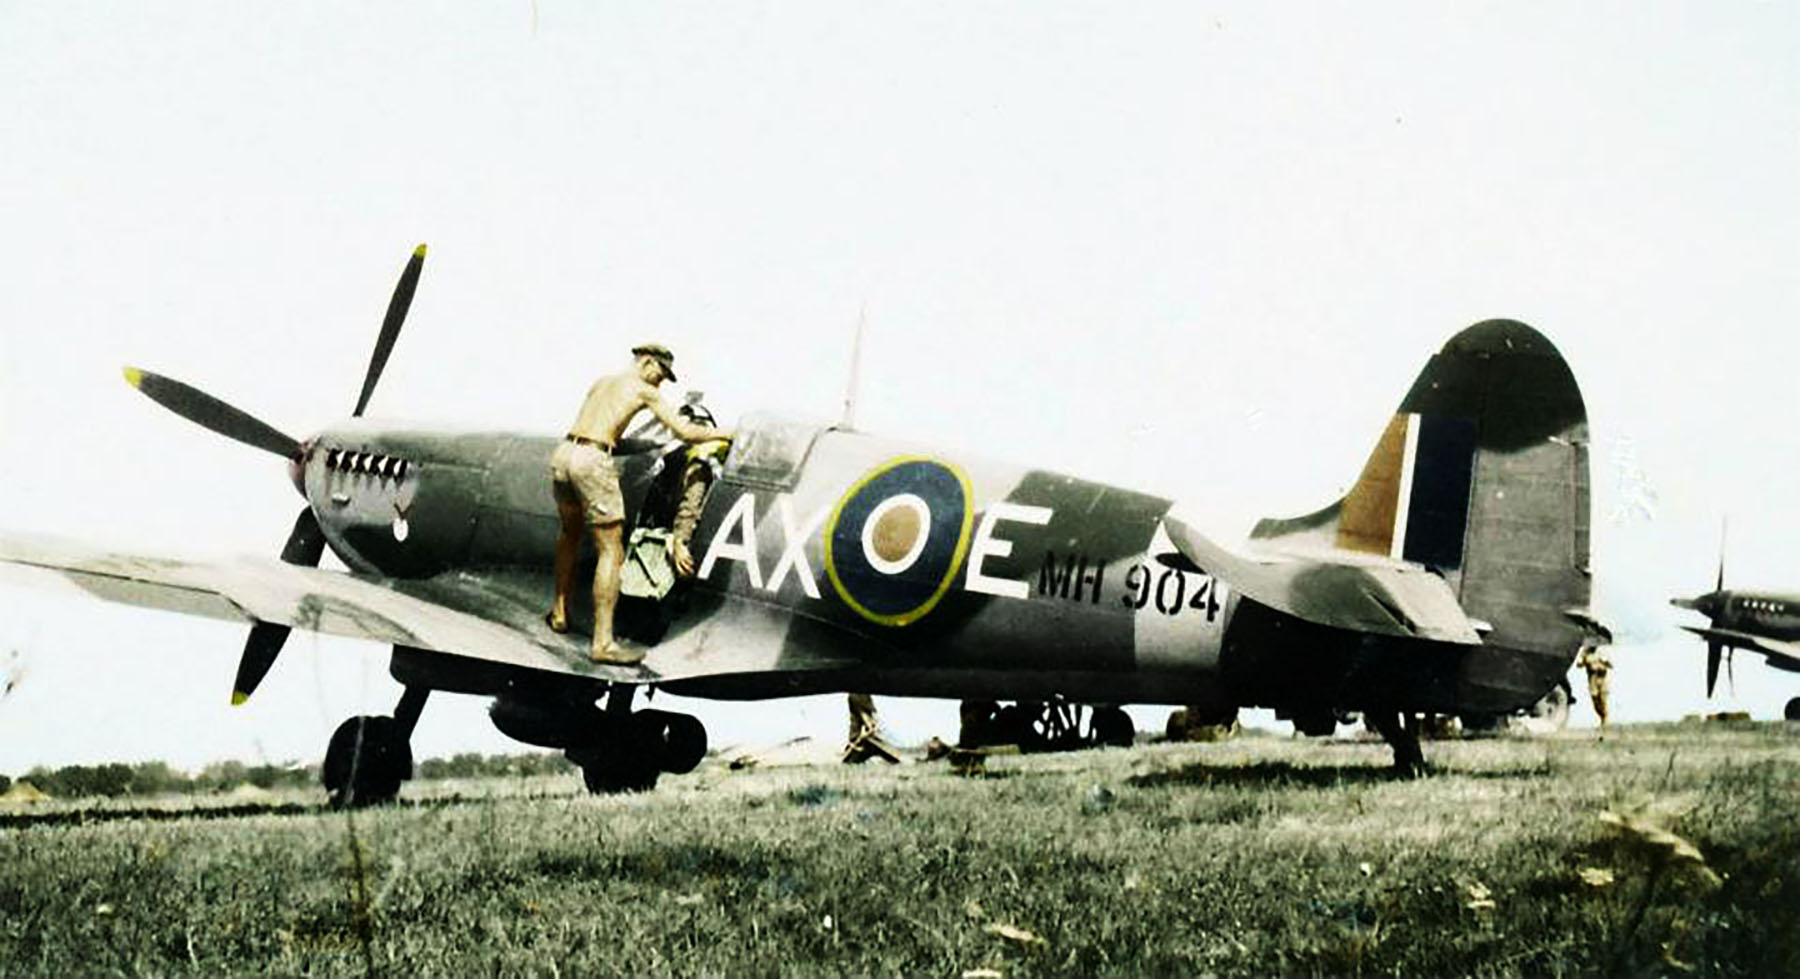 Spitfire MkIX SAAF 1Sqn AXE MH904 Italy 1943 01